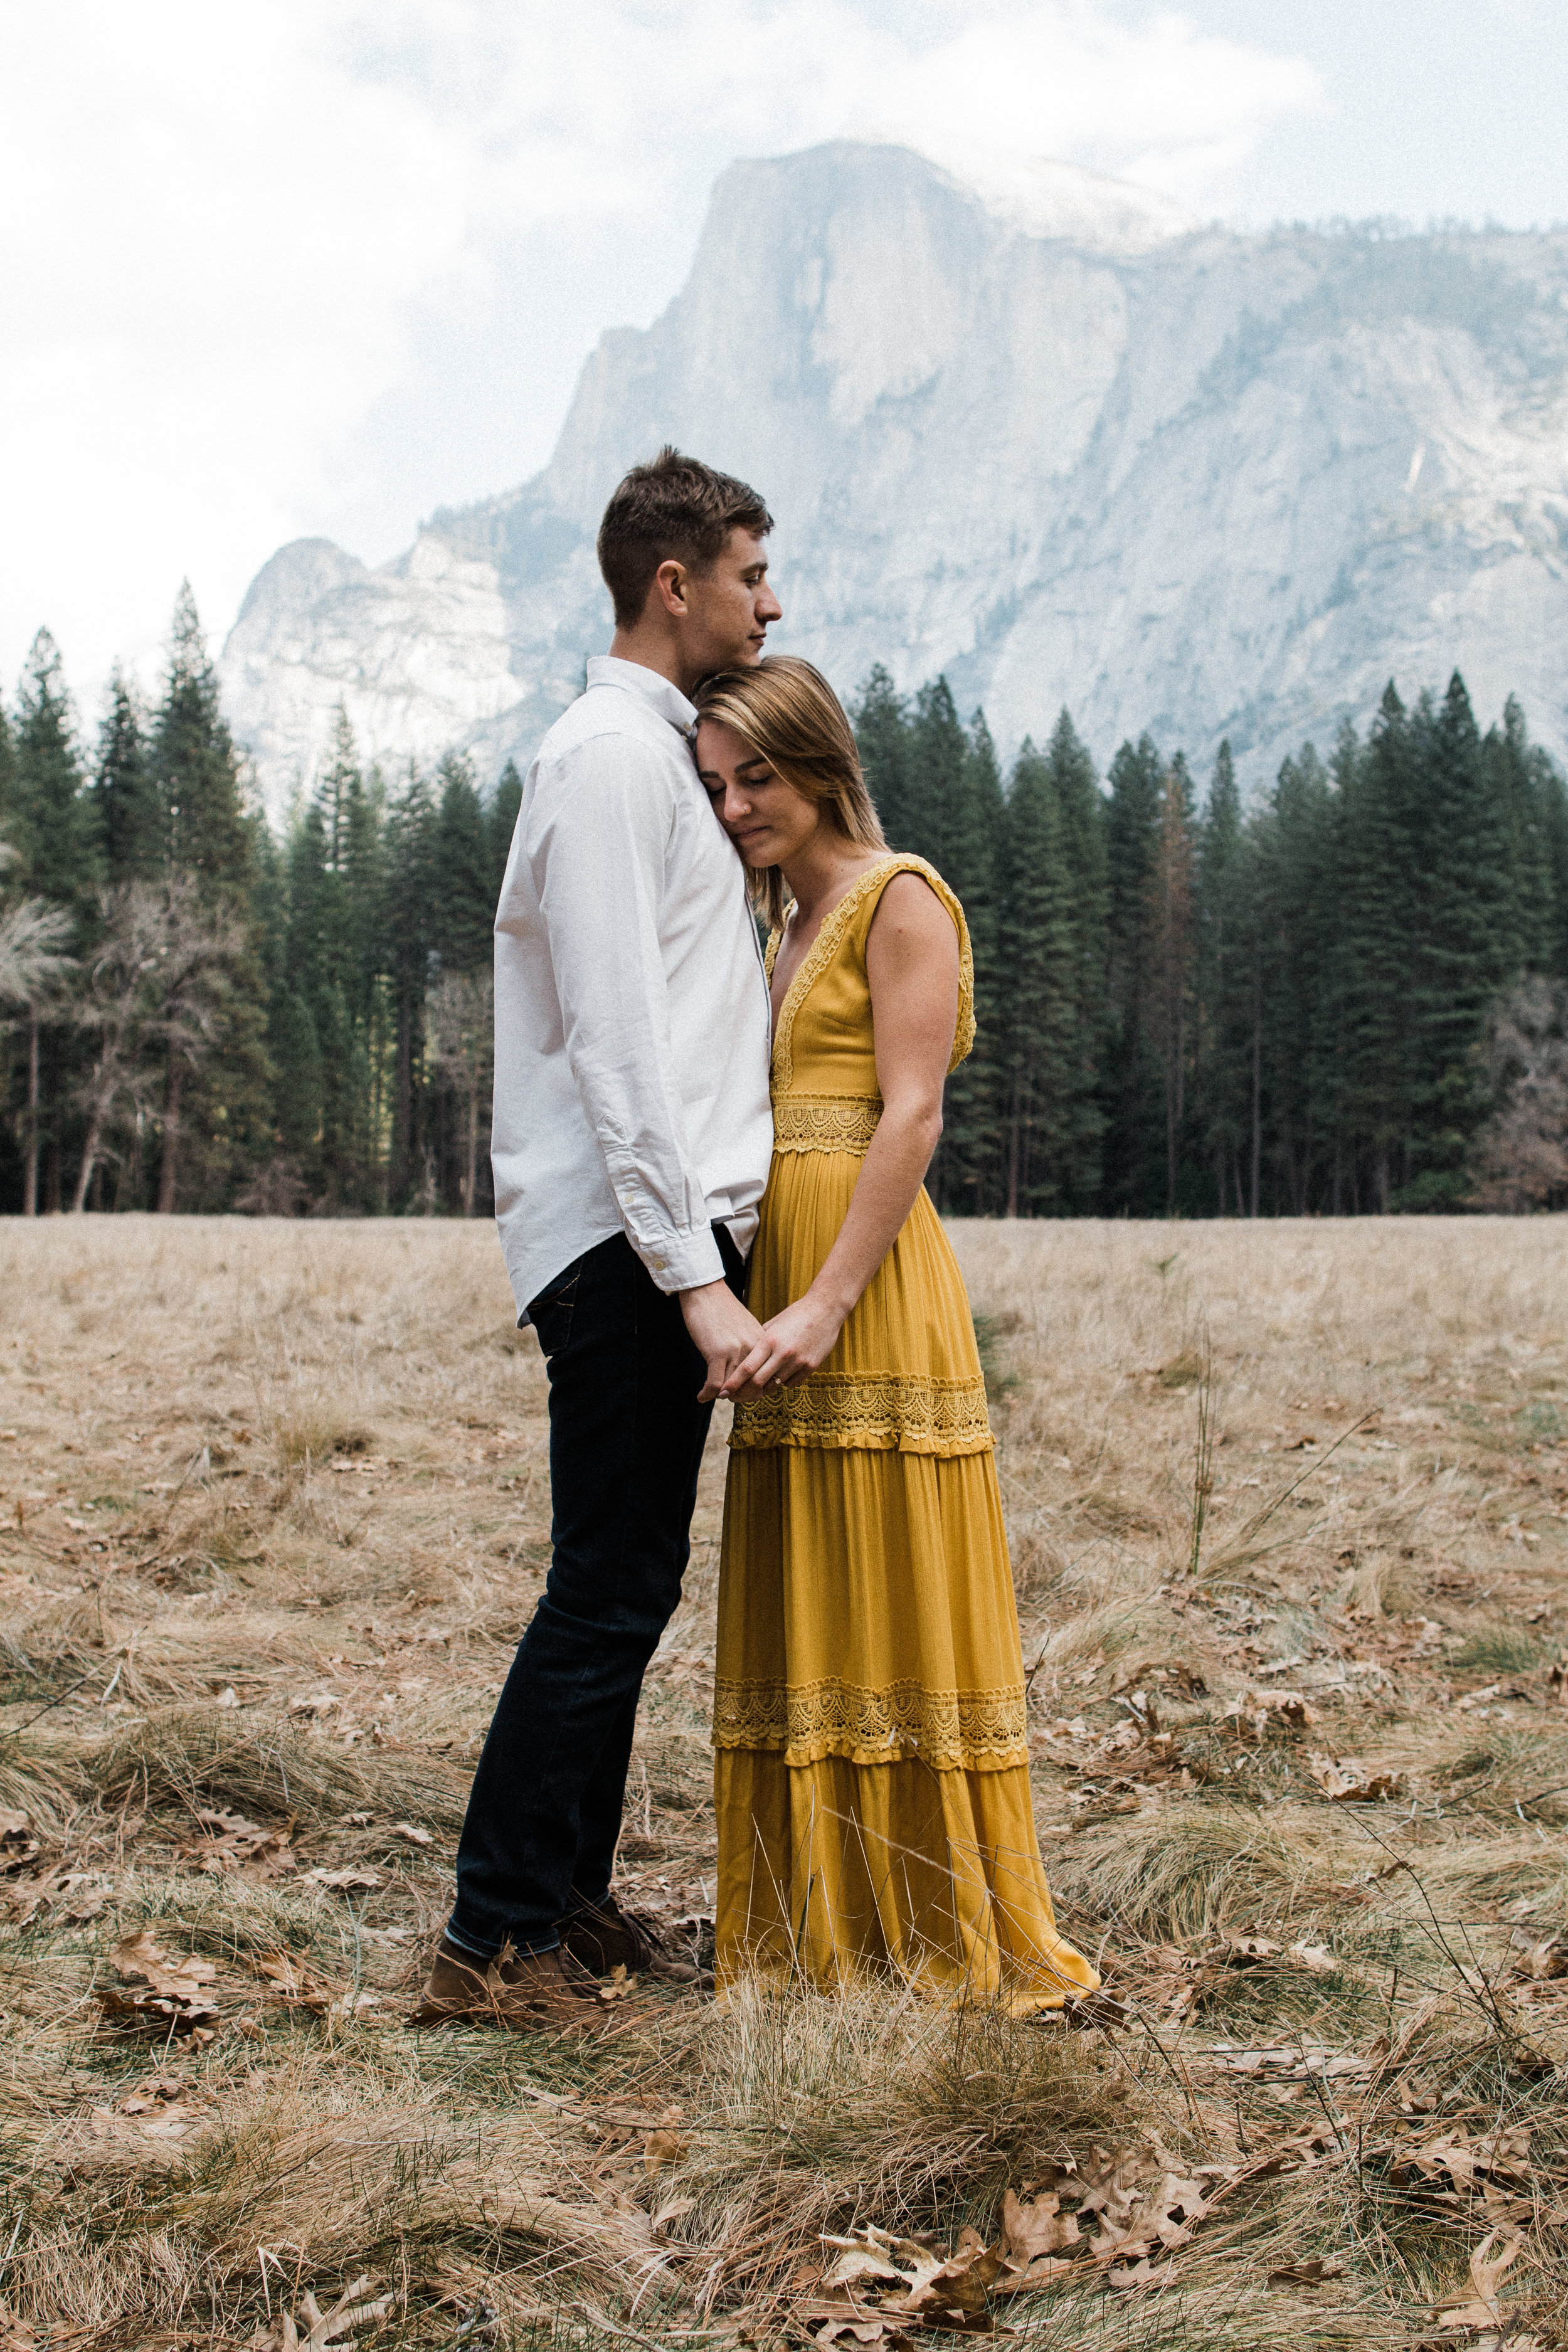 Yosemite national park engagement session | Yosemite wedding photographer | Fresno wedding photographer